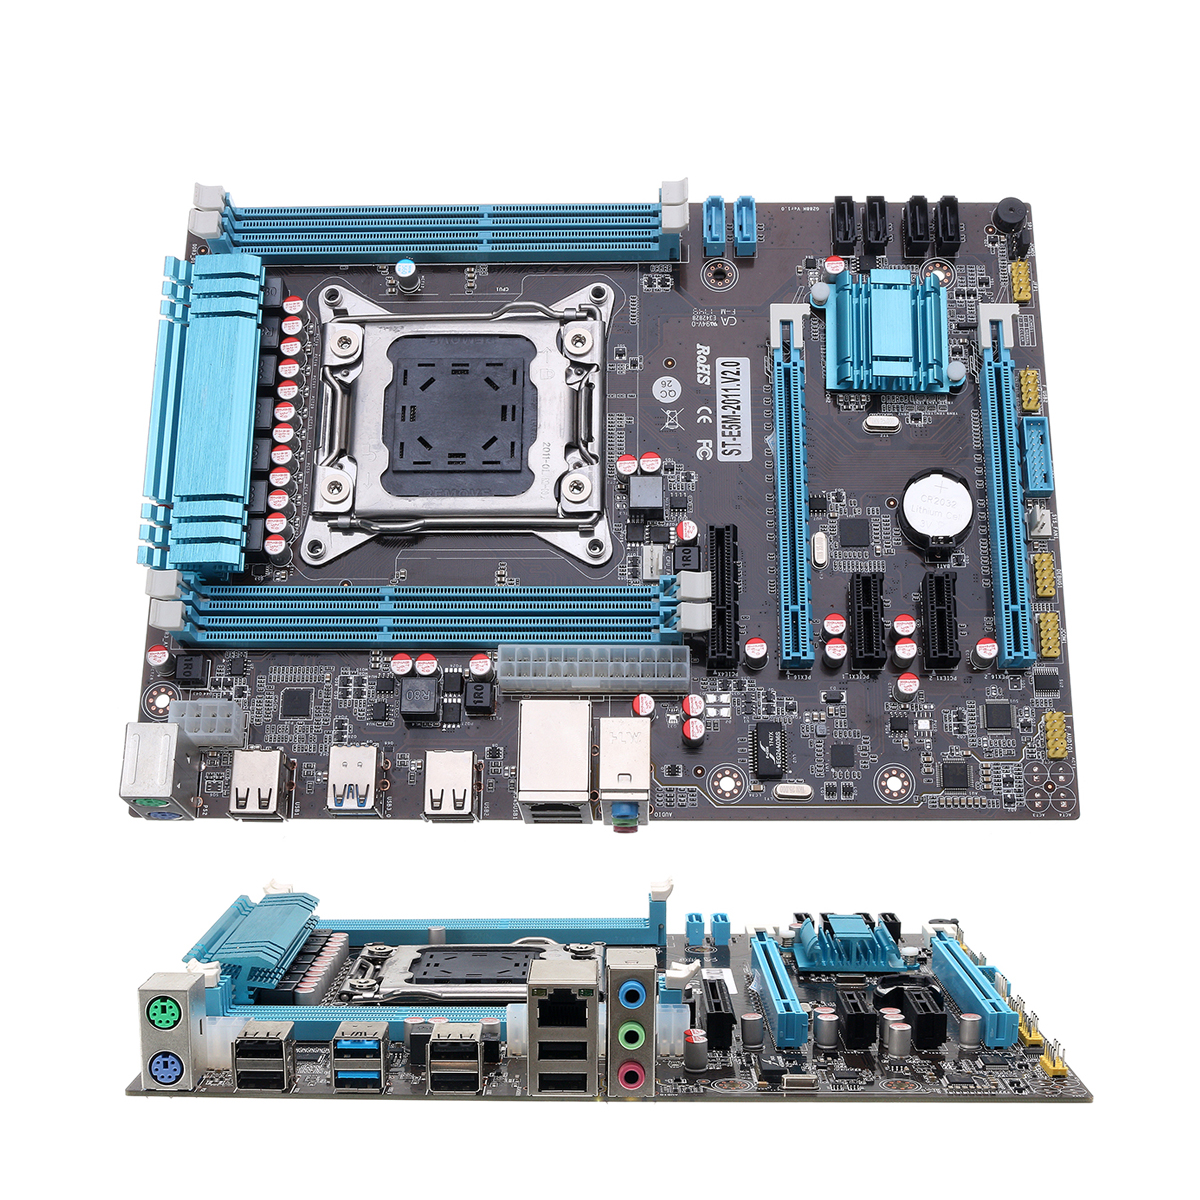 LEORY X79 Computer PC Gaming Mainboard Use Desktop Motherboard ATX For Intel X79 LGA 2011 DDR3 Support For i7/E5 with SATA Cable intel g45 atx lga 775 ddr3 computer motherboard blue silver